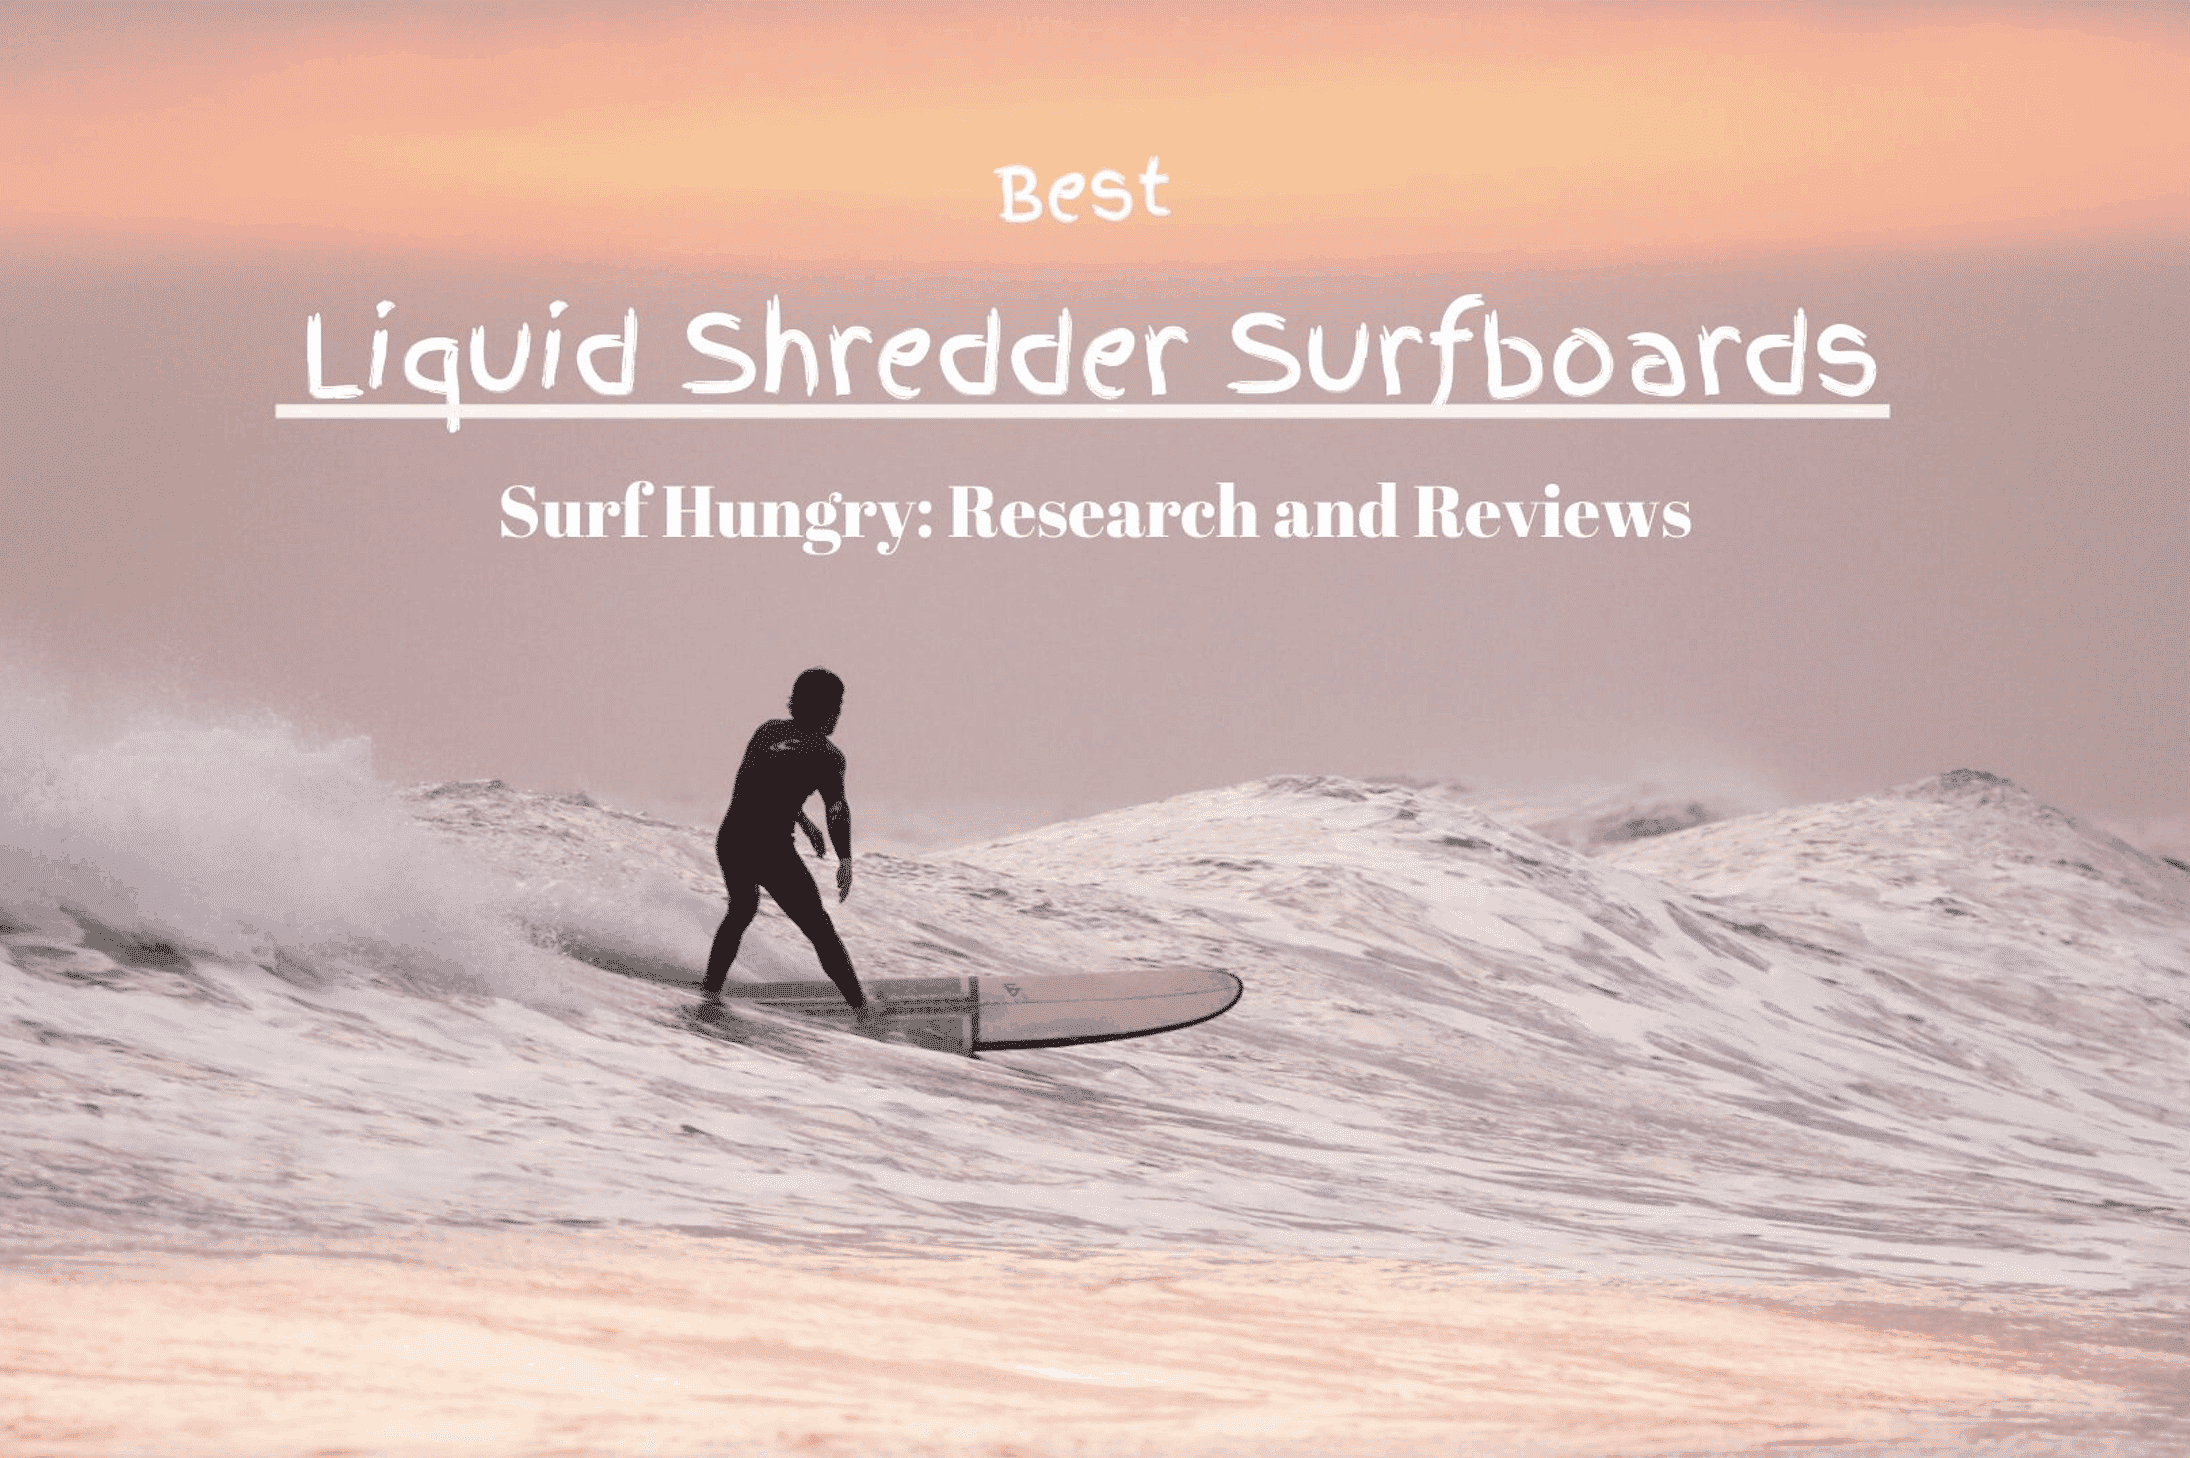 liquid shredder surfboards reviews